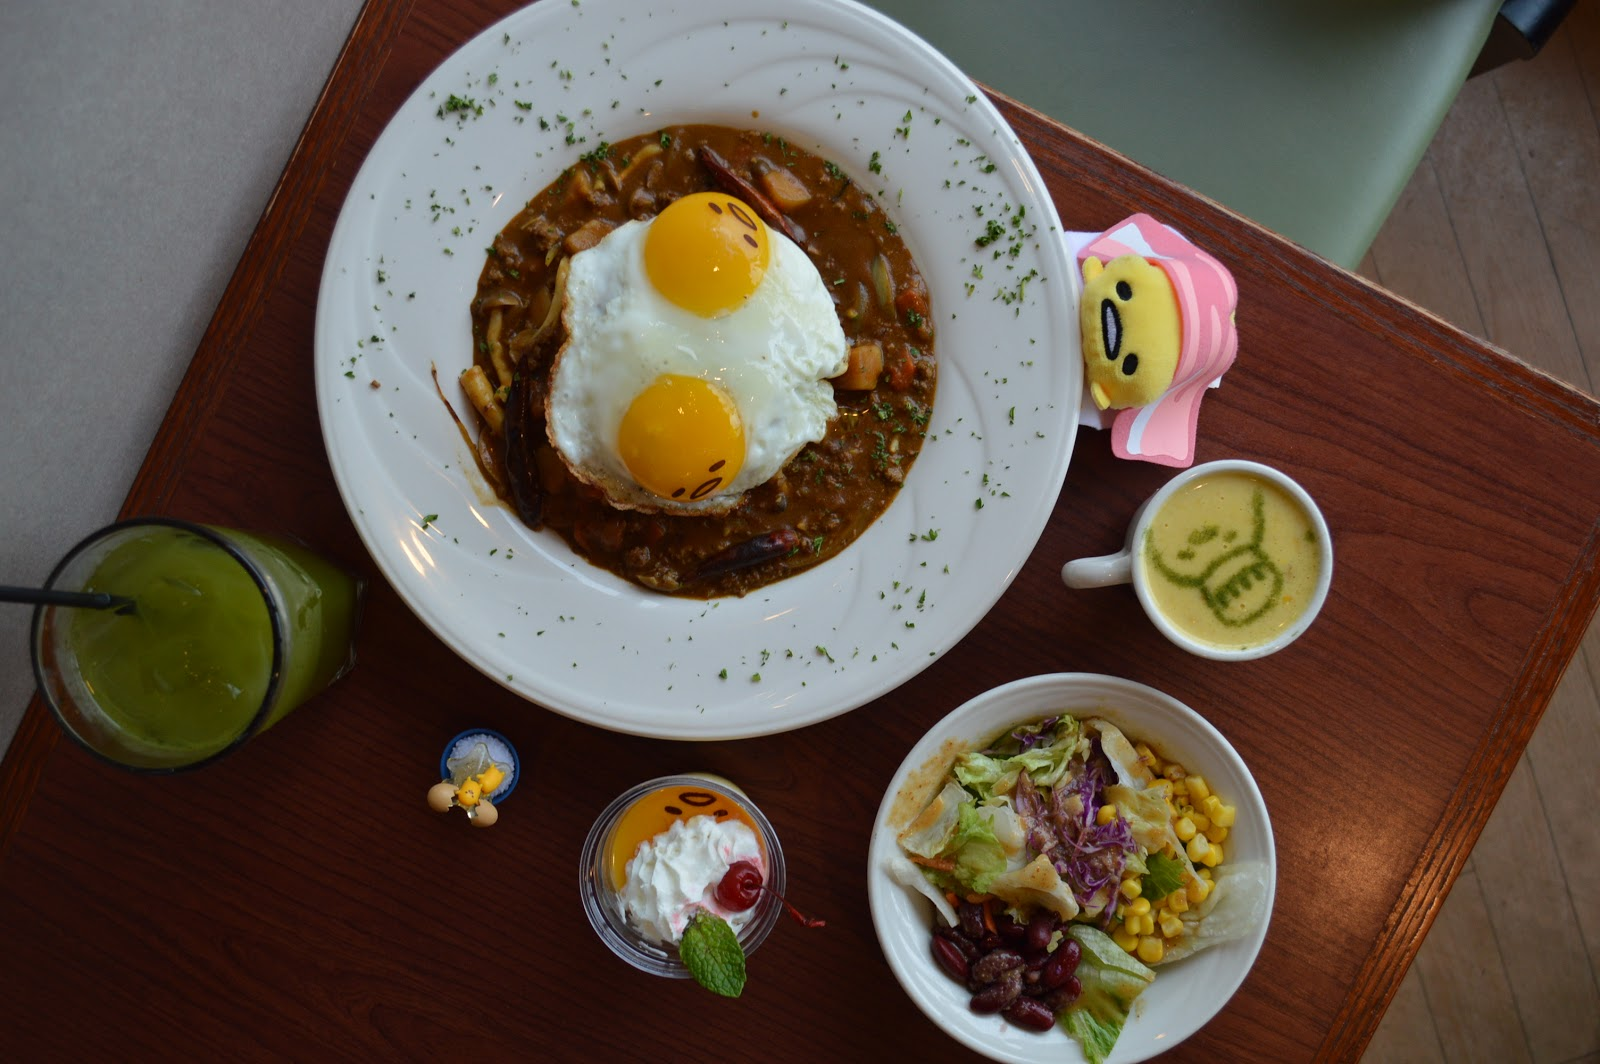 Doubly Egg-Cited For The Gudetama x Curry House Collab Extending Through February!